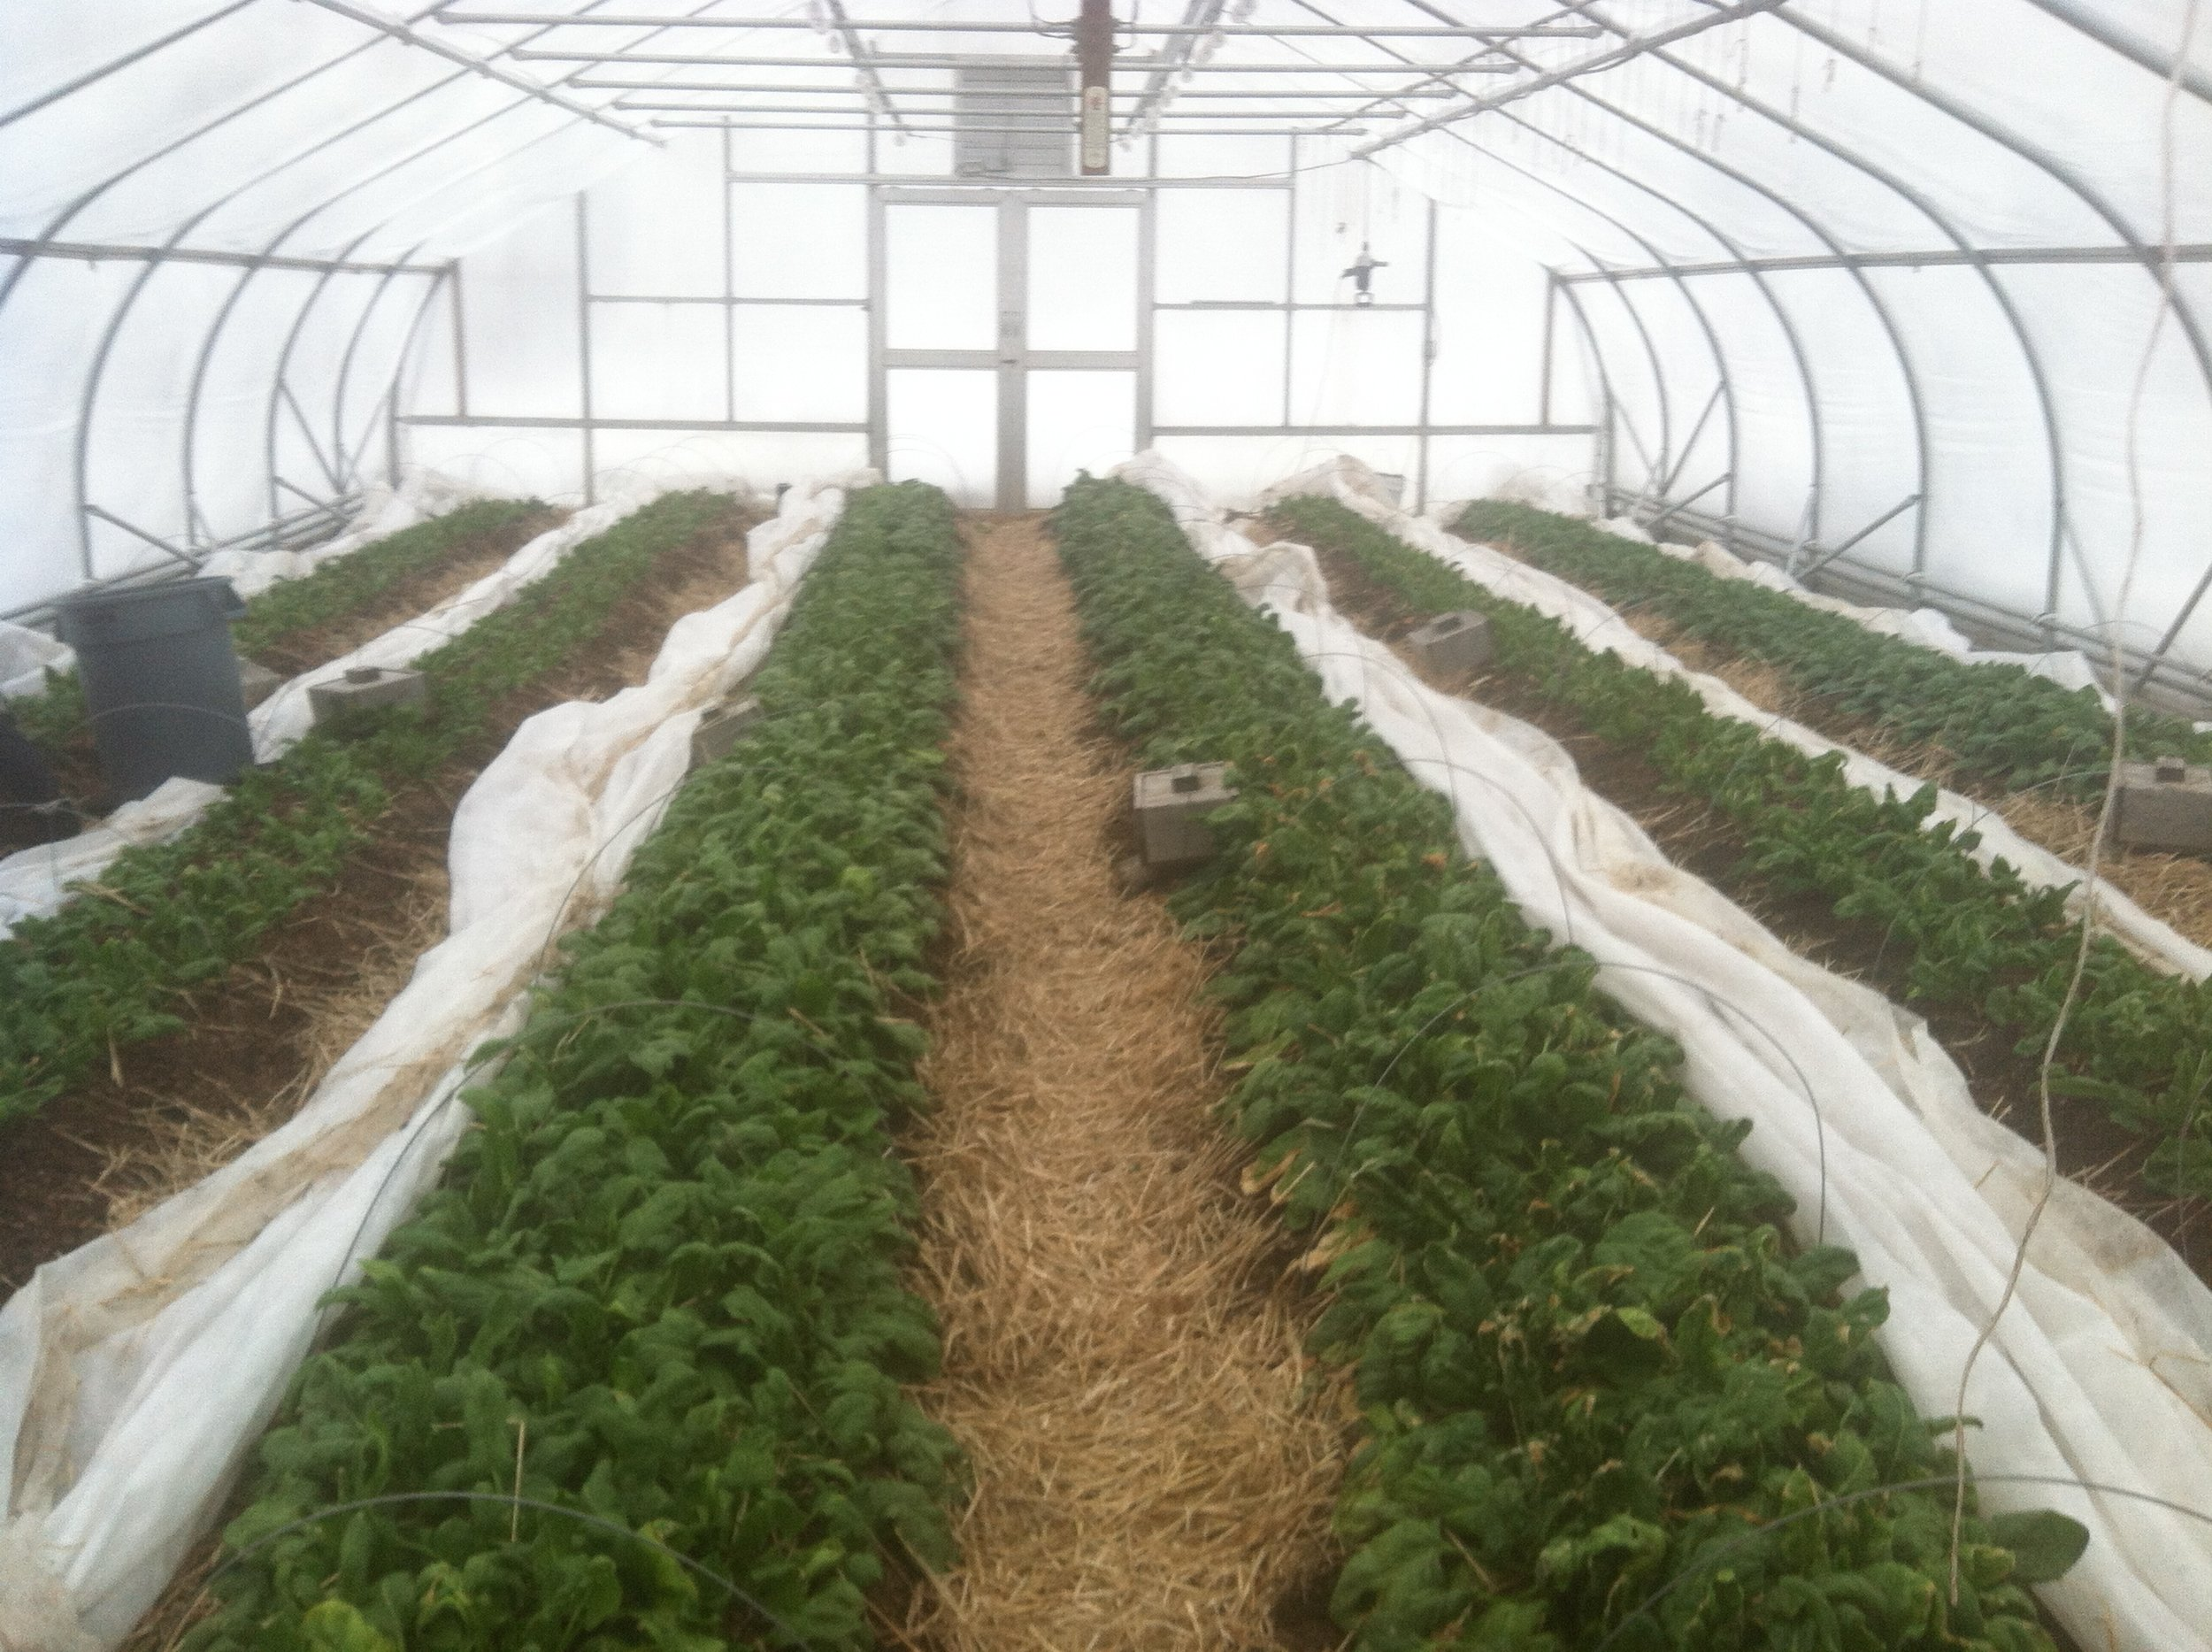 """Spinach plants hanging in there, despite the tough winter. The Eliot Coleman-style  vole traps  were pretty busy in the fall, but we got """"them"""", before they got much of the spinach. Haven't seen any vole activity here lately, although we've seen plenty over near the biochar retort."""